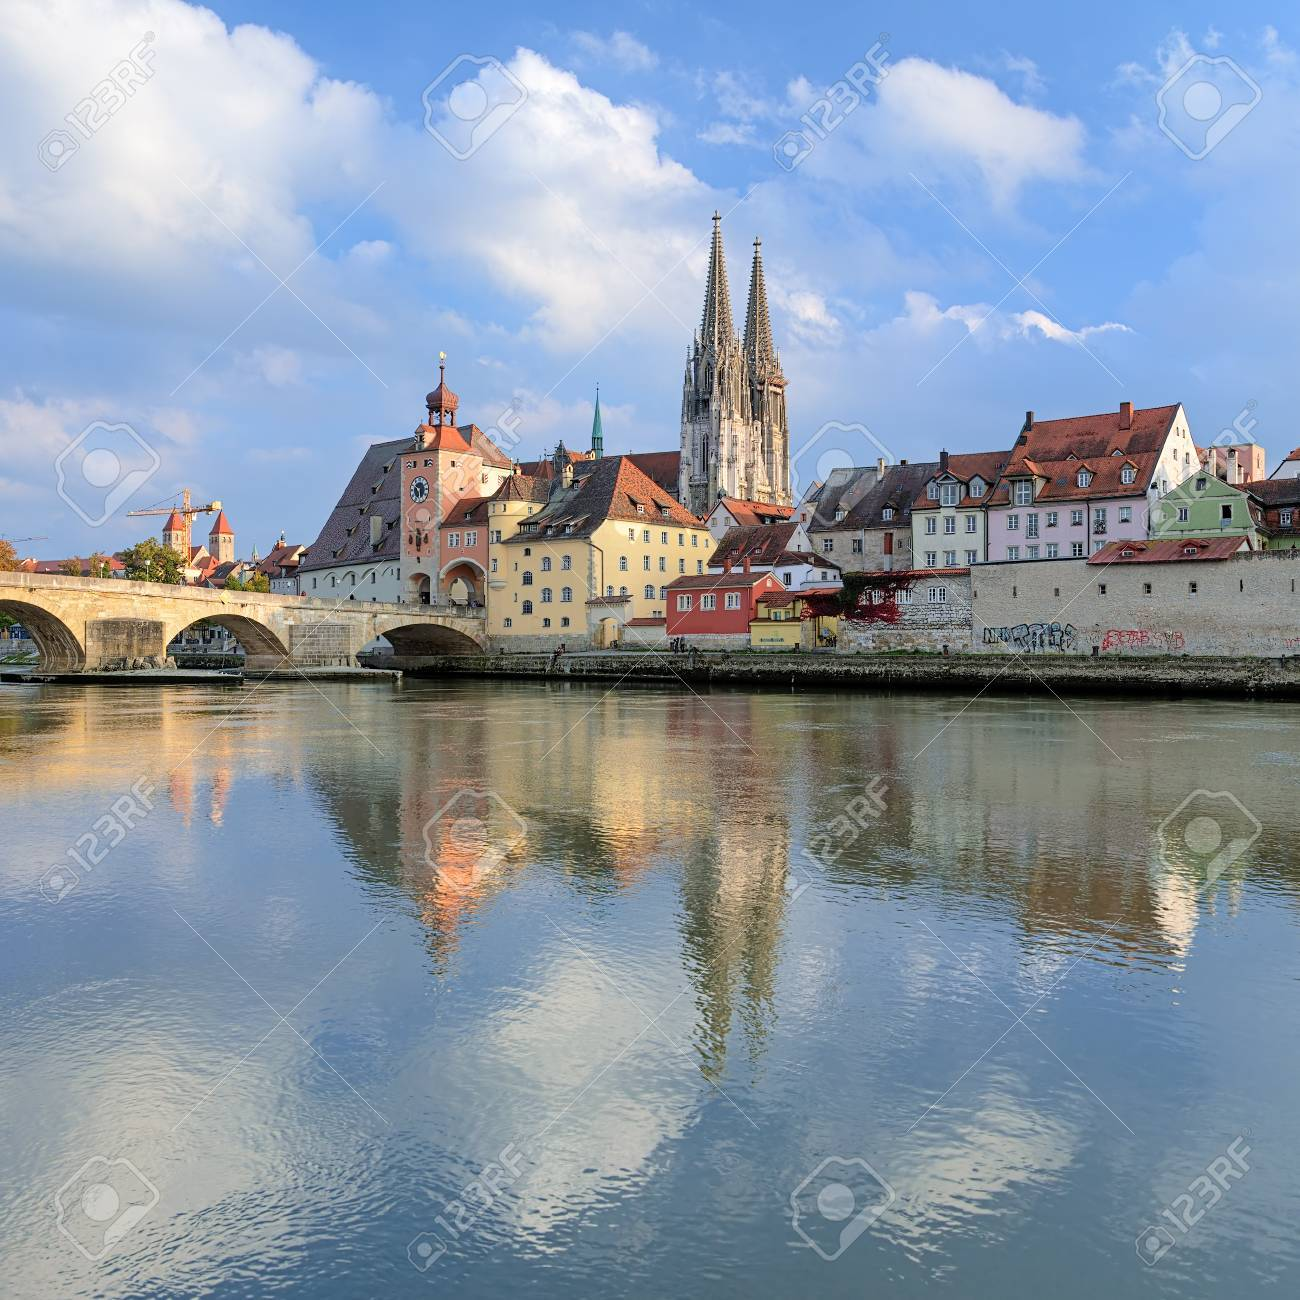 Regensburg Bilder Stock Photo